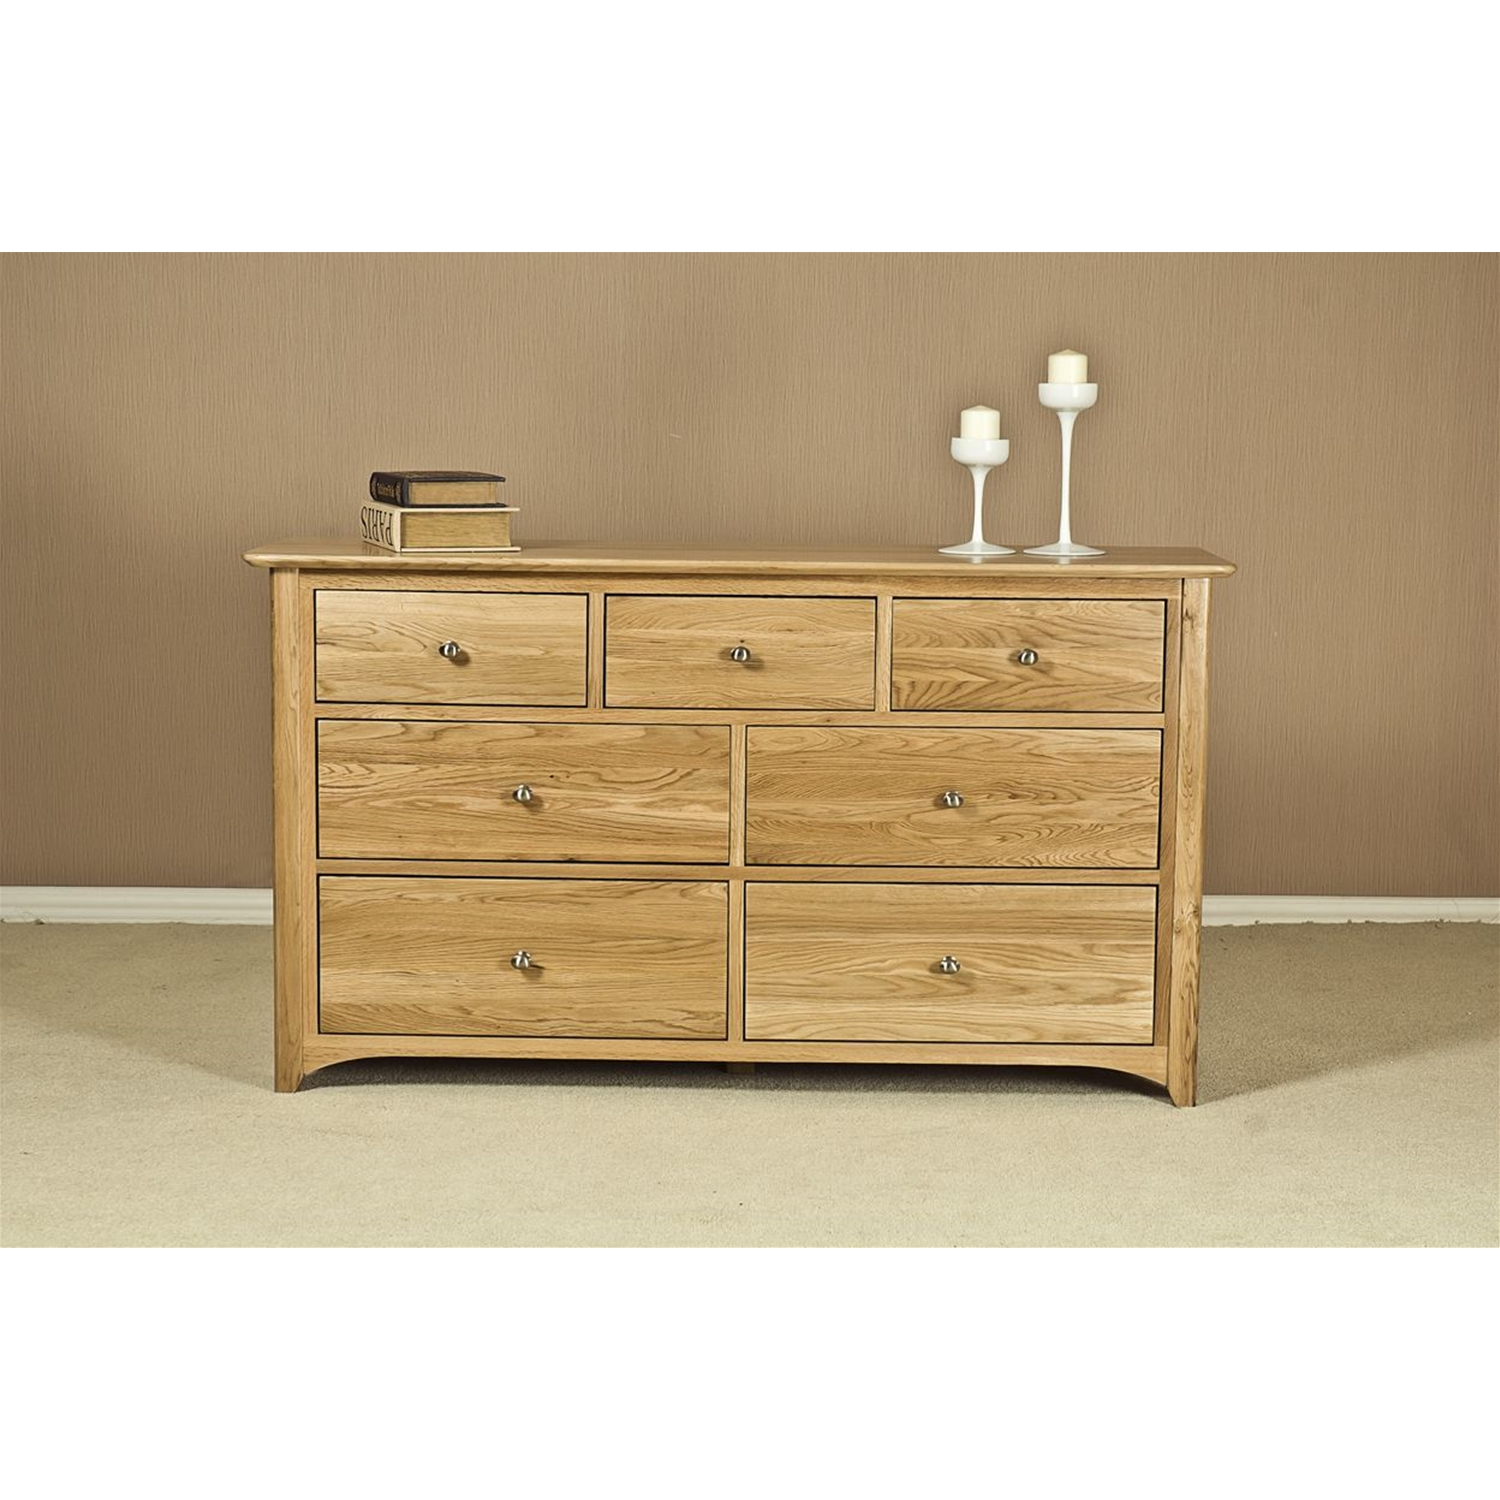 Image of Casa Toulouse 3 Over 4 Drawer Chest